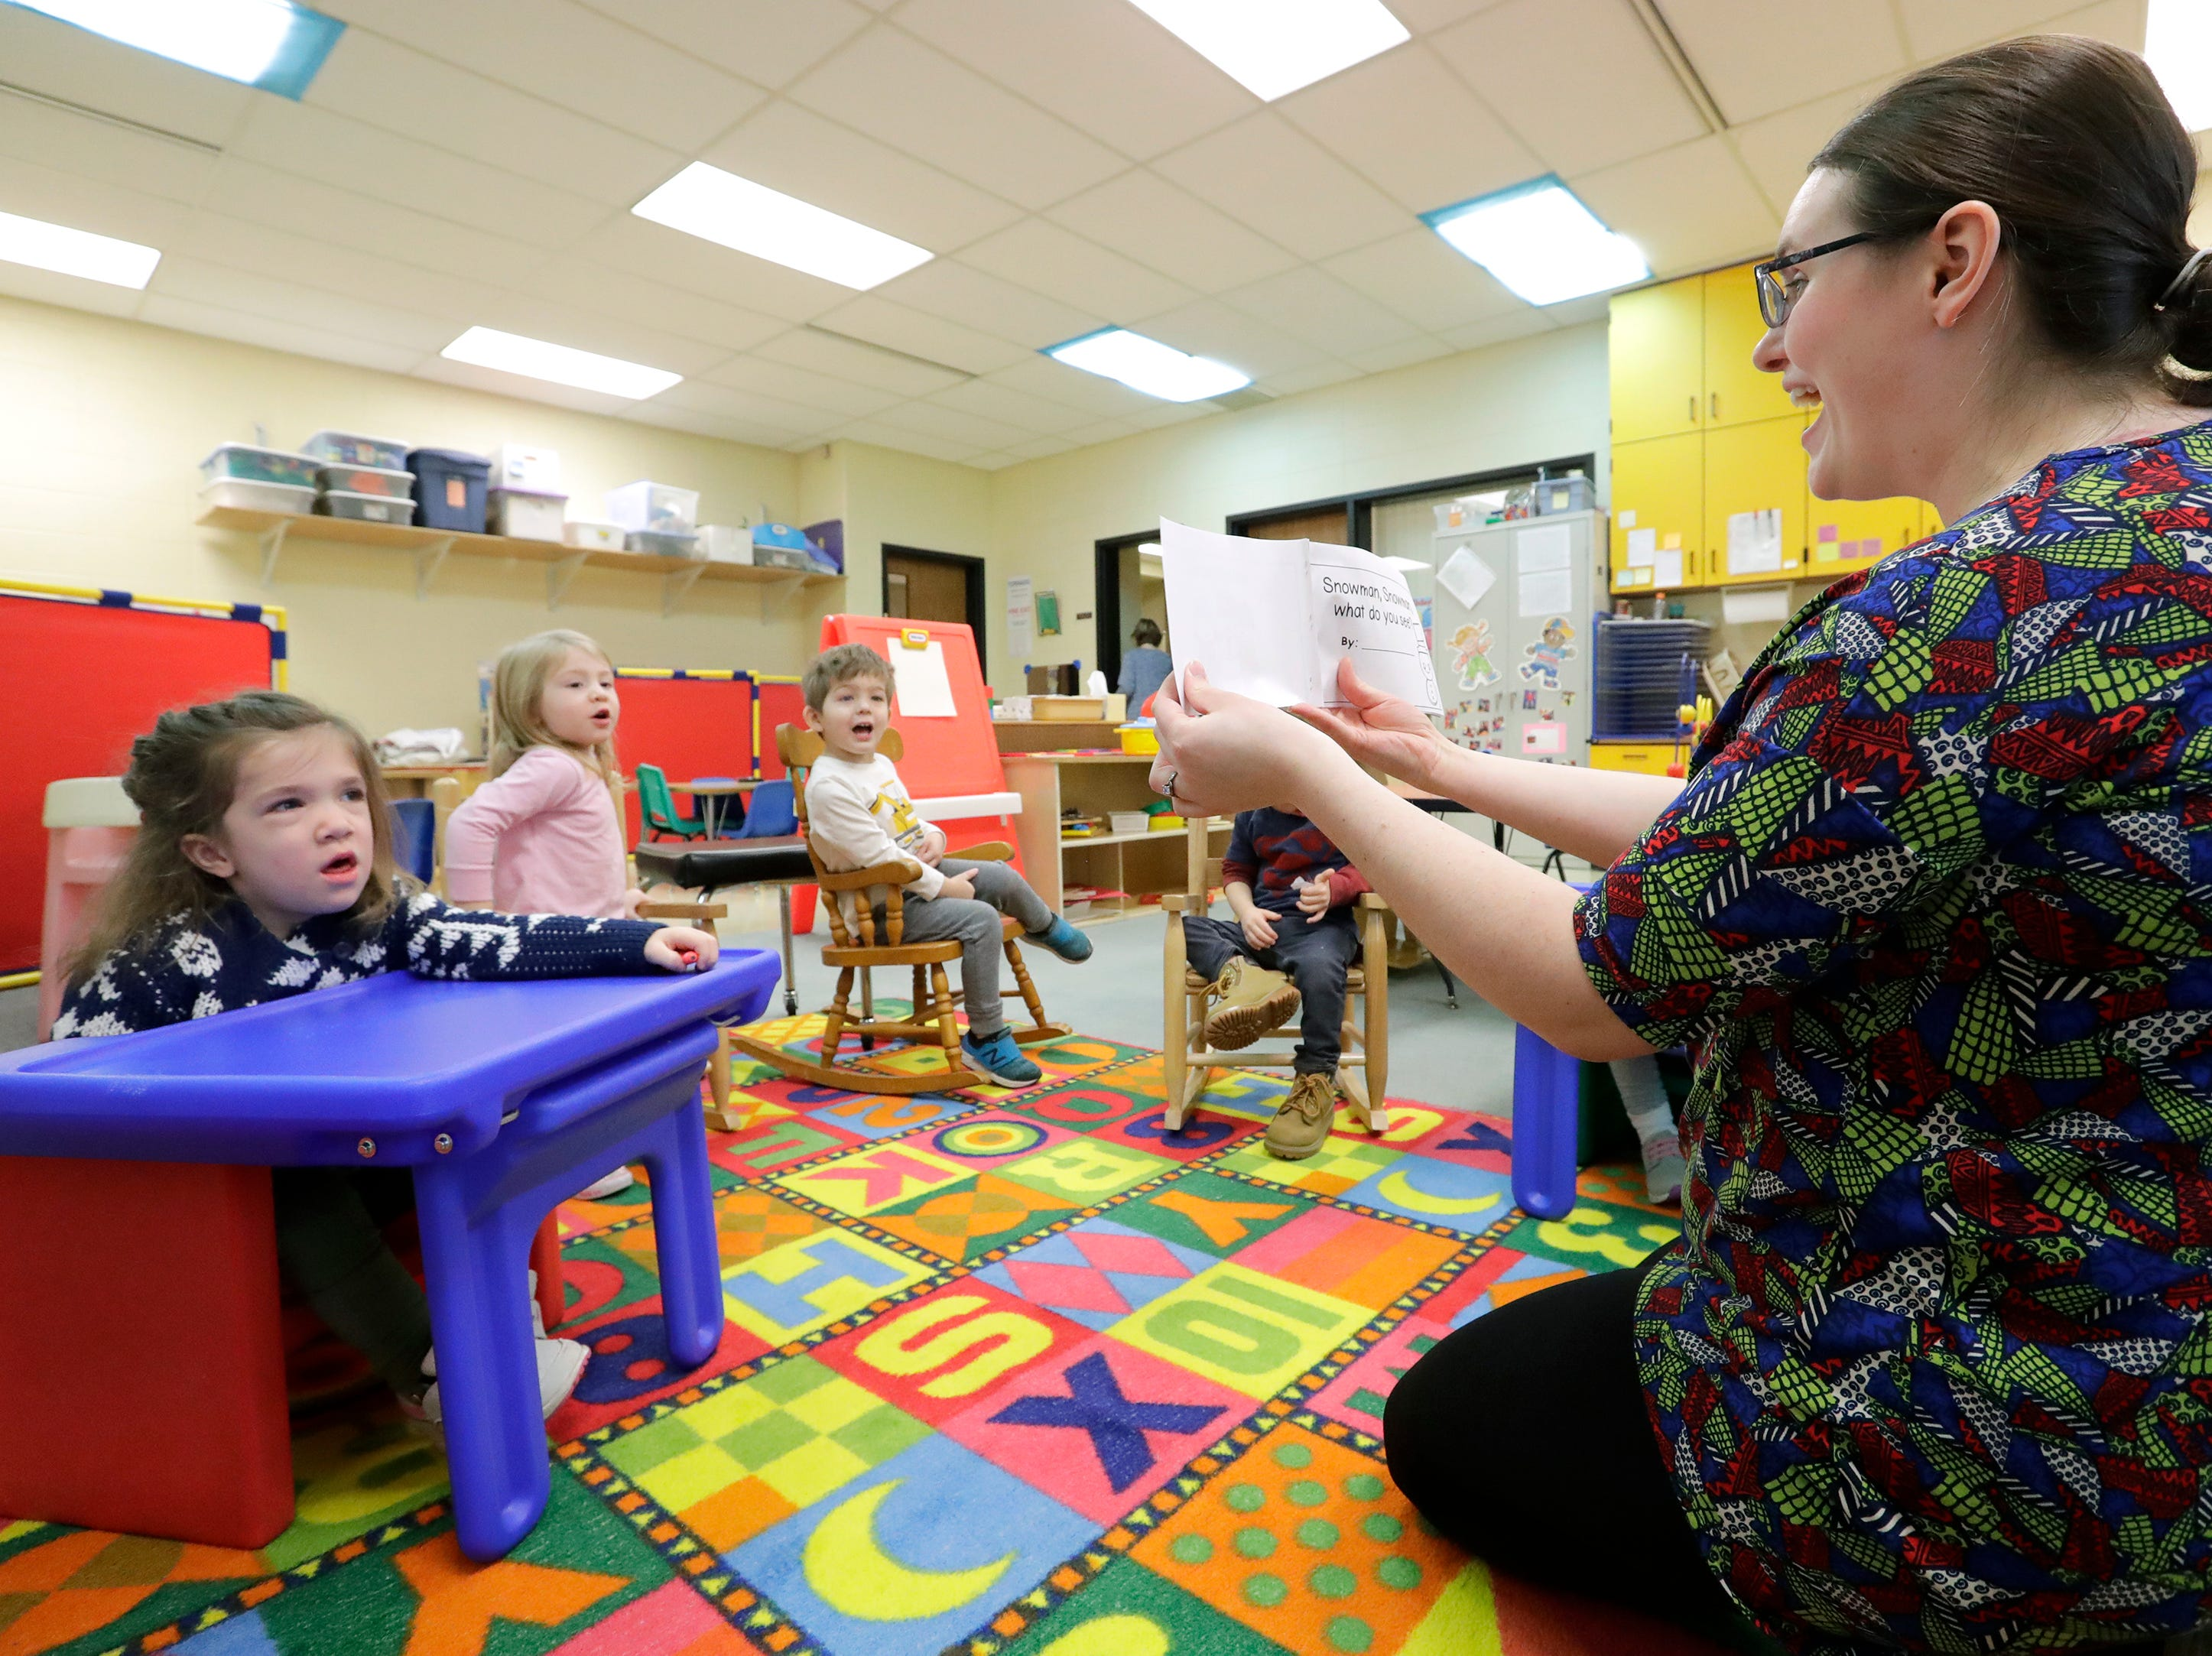 Avi Brennan, left, answers a question by speech-language pathologist Deirdre Floros during a class speech therepy session Monday, January 7, 2019, at the Washington School of Early Learning in Neenah, Wis. Dan Powers/USA TODAY NETWORK-Wisconsin